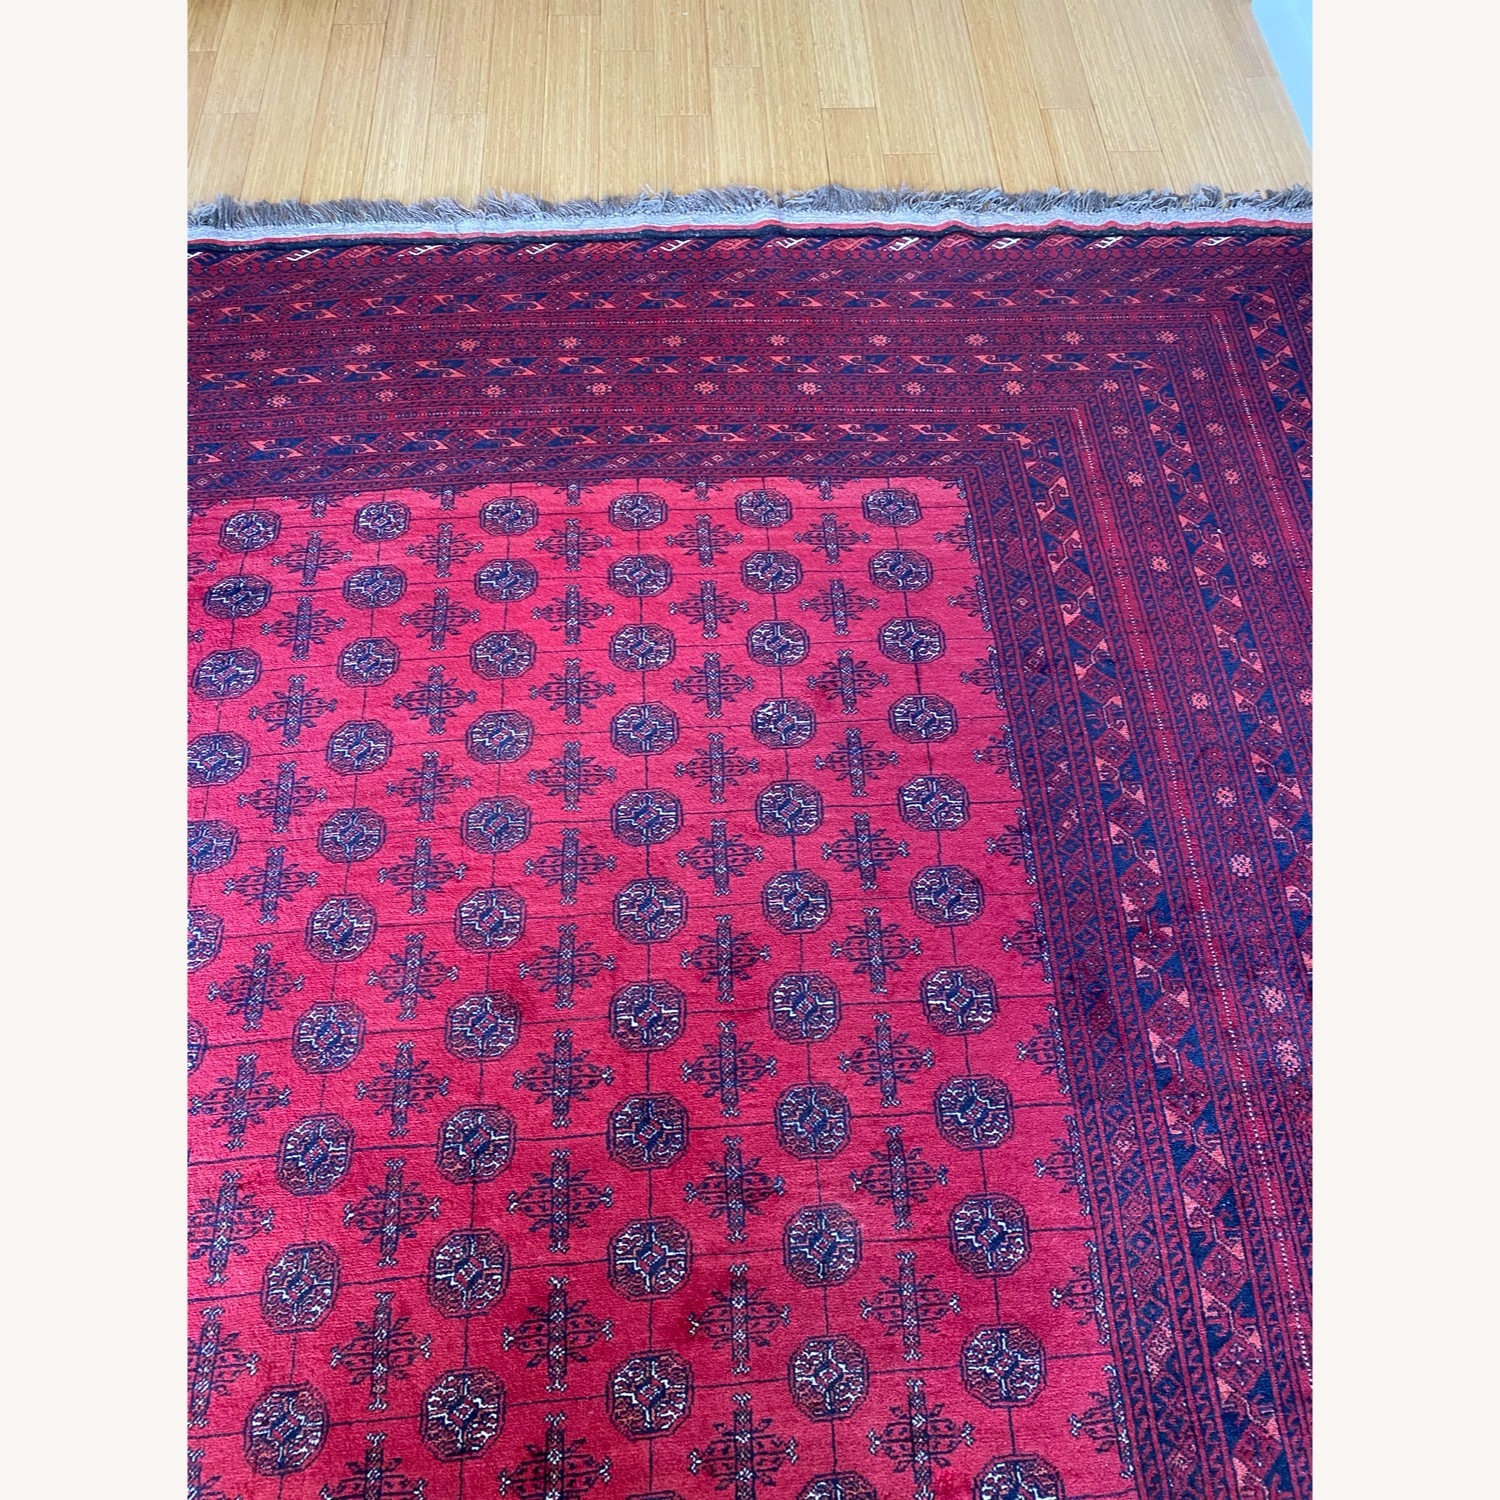 Authentic Handwoven Rug from Afghanistan - image-1